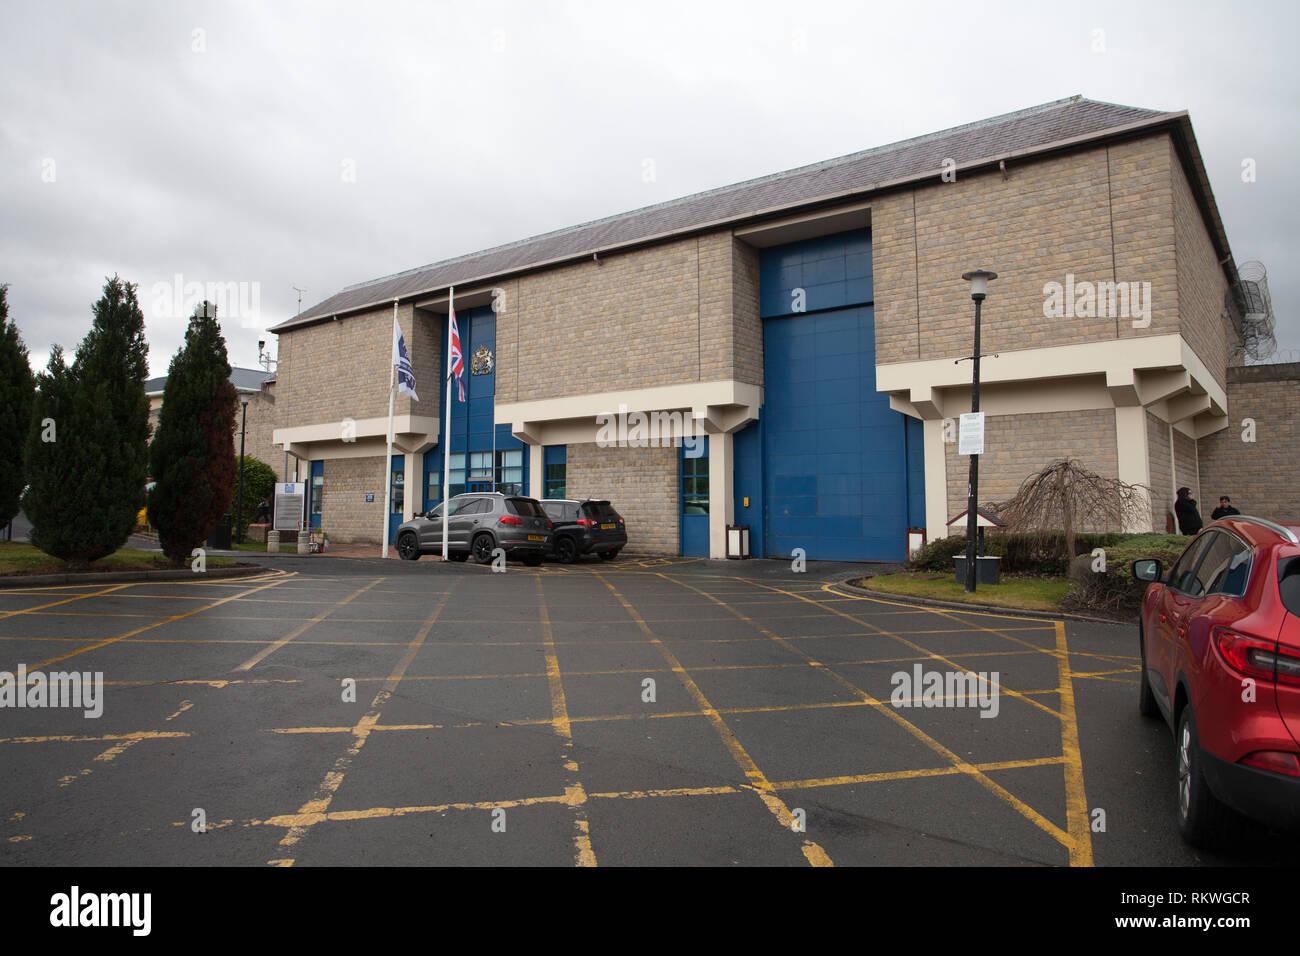 Durham,UK, 12th February 2019. HMP Durham, hit by rising violence and a spate of drug related deaths was promised scanning equipment only for it to be diverted to another jail, according to a watchdog report.Scene outside the prison today. Credit David Dixon / Alamy Live News - Stock Image